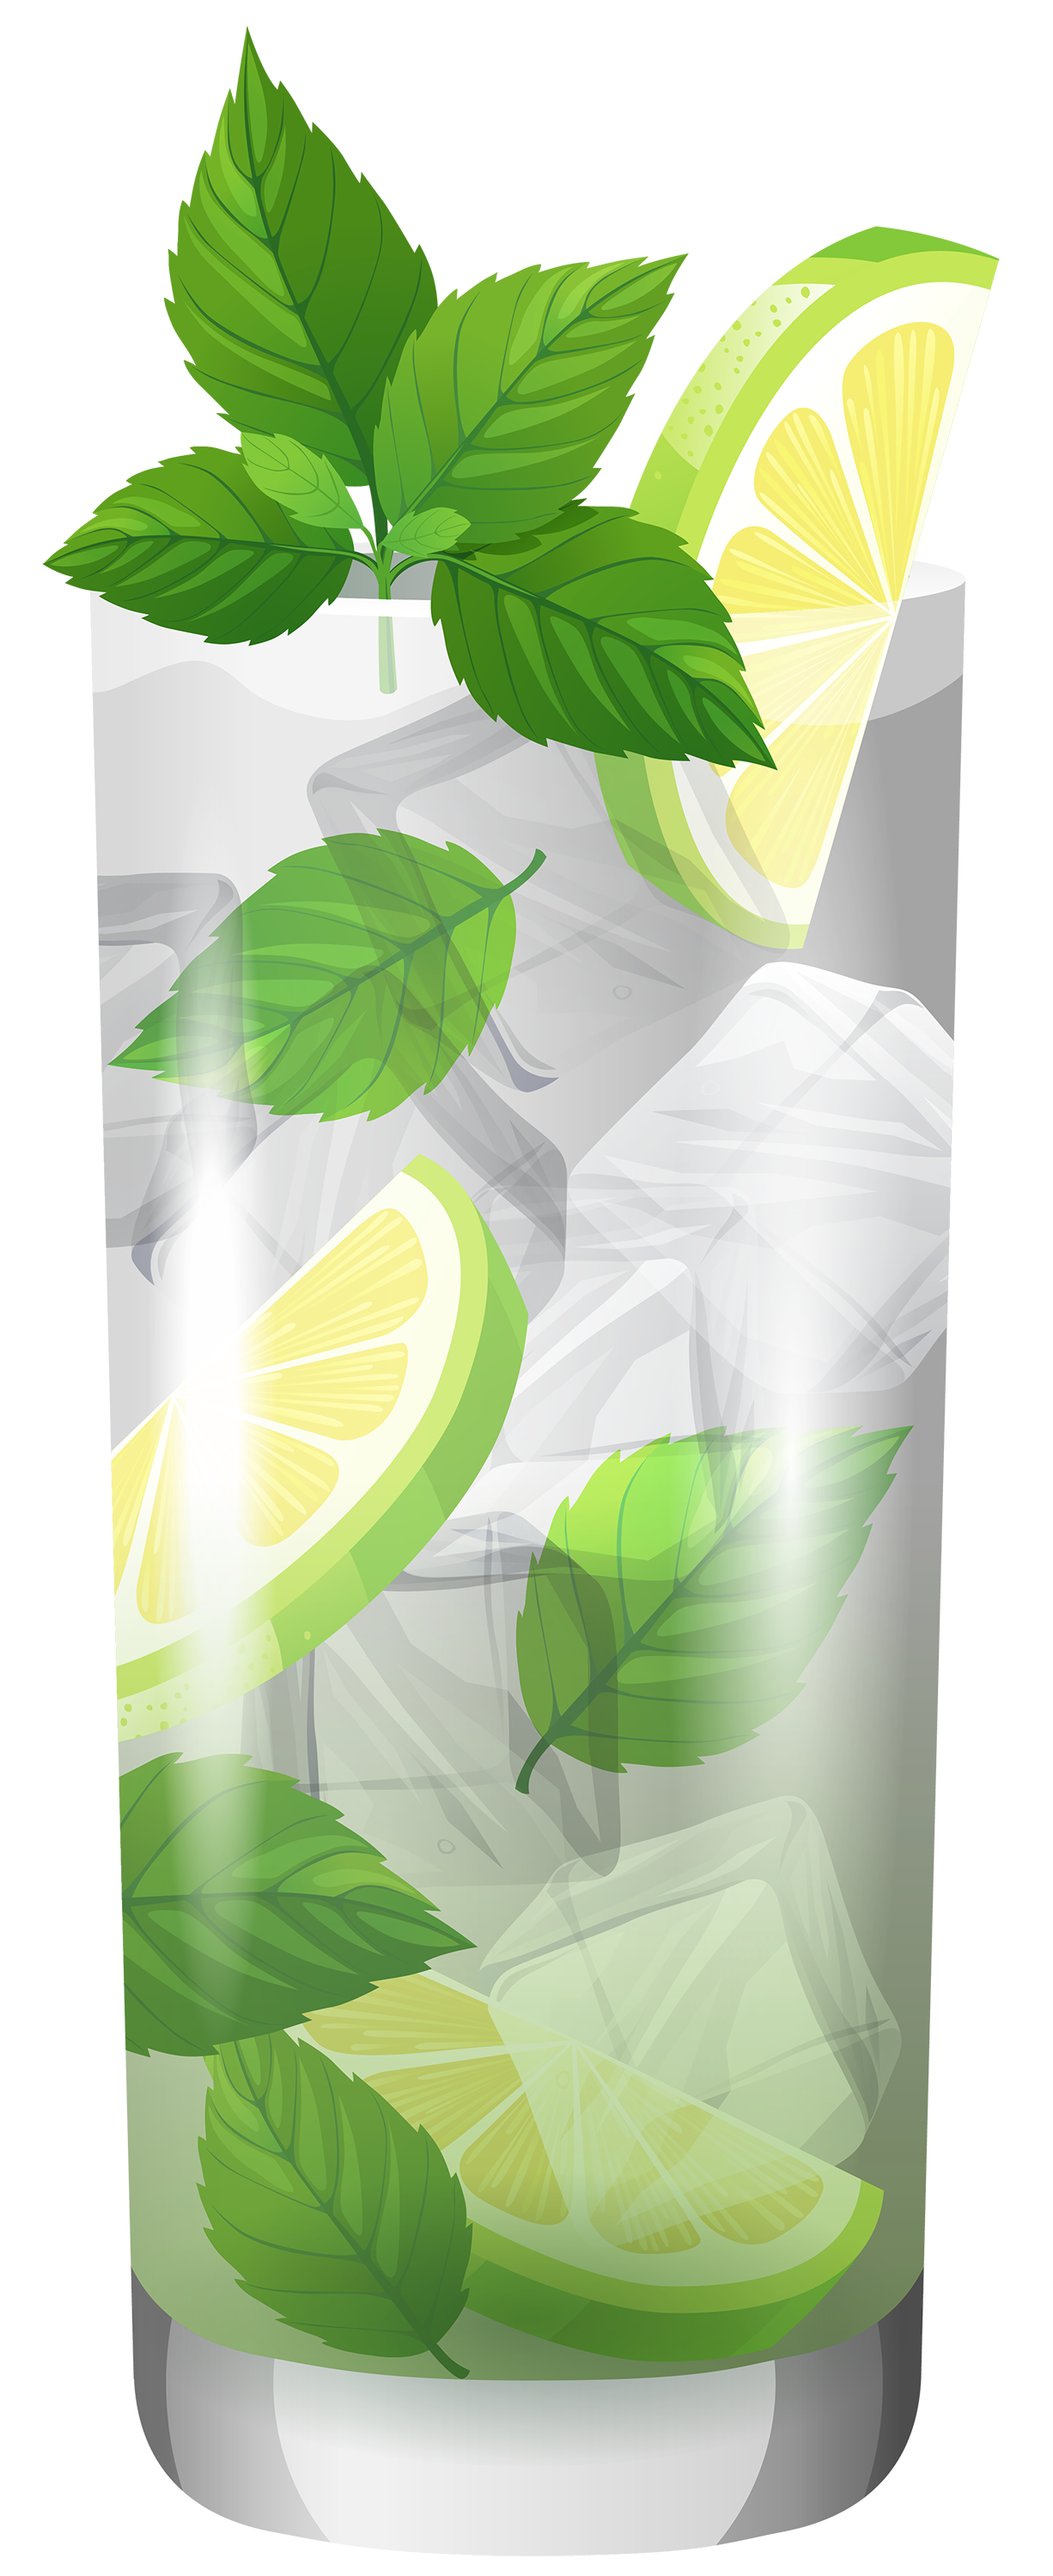 Cocktail mojito png best. Monday clipart transparent